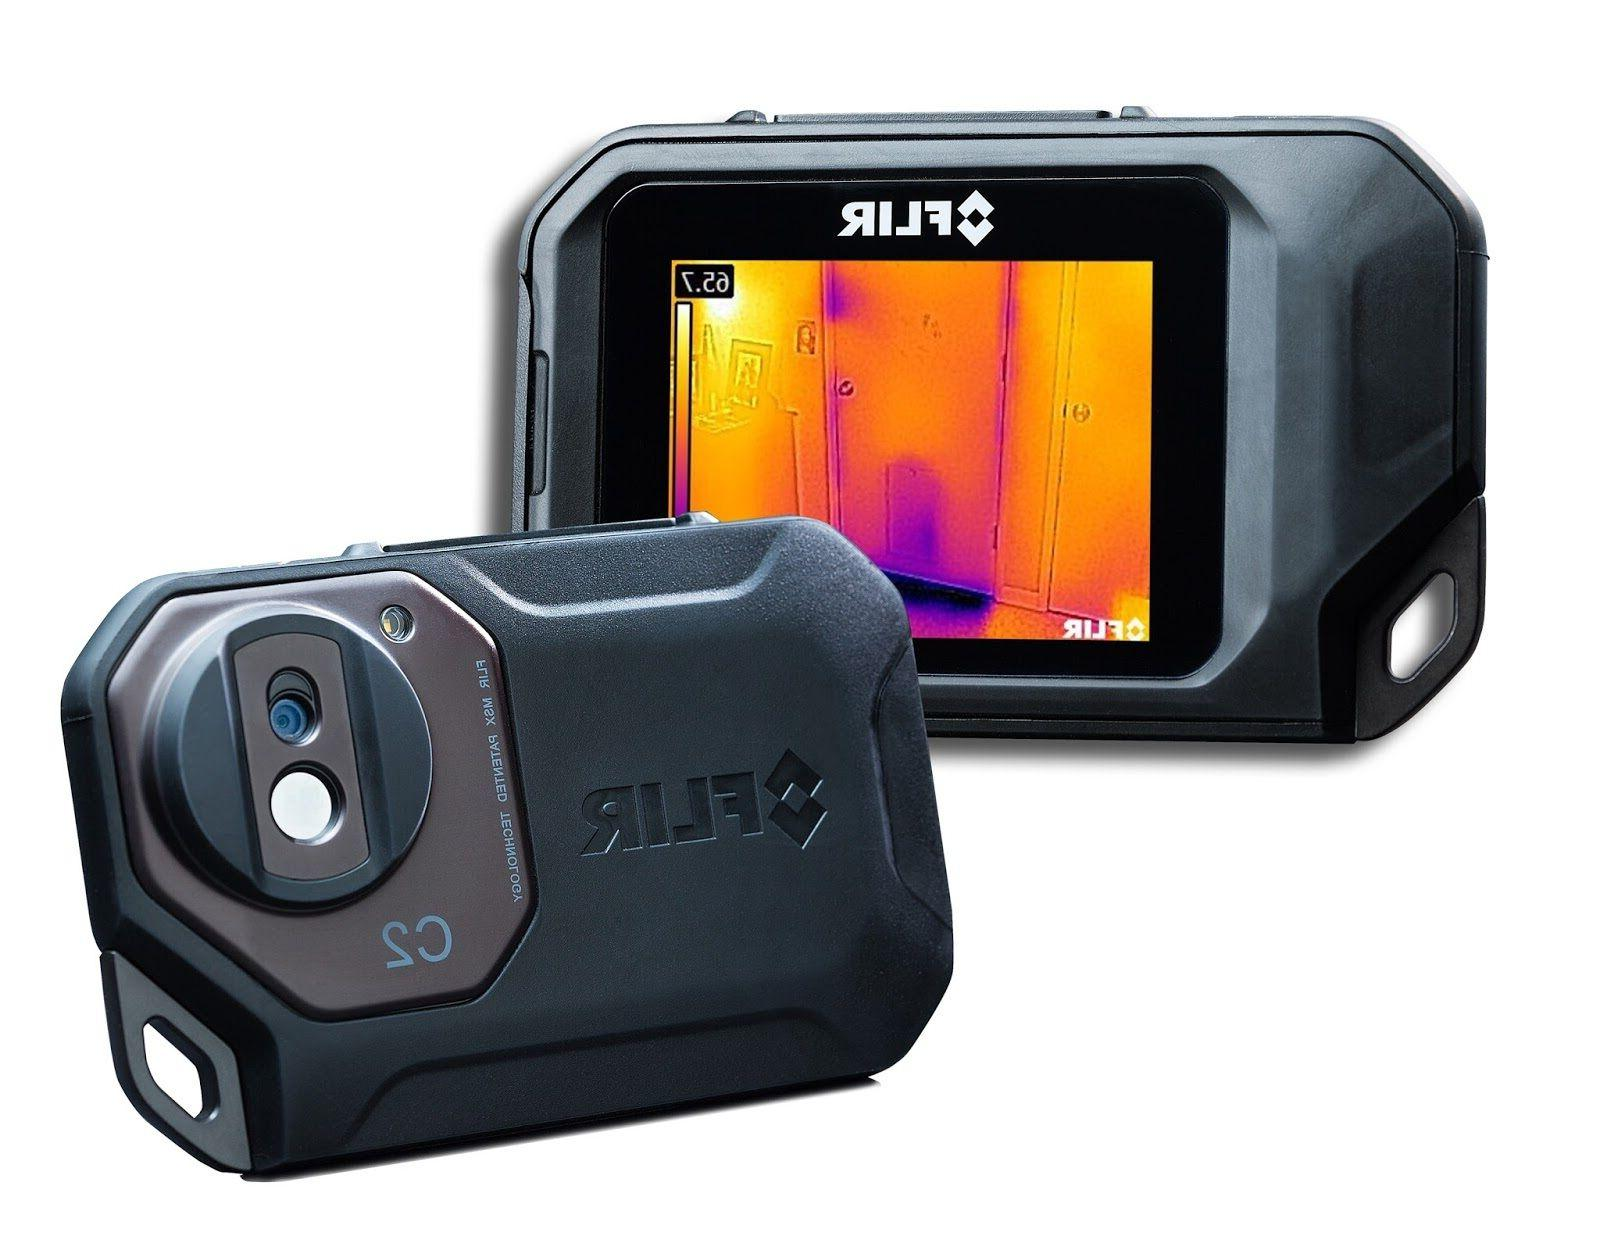 c2 compact thermal imaging system